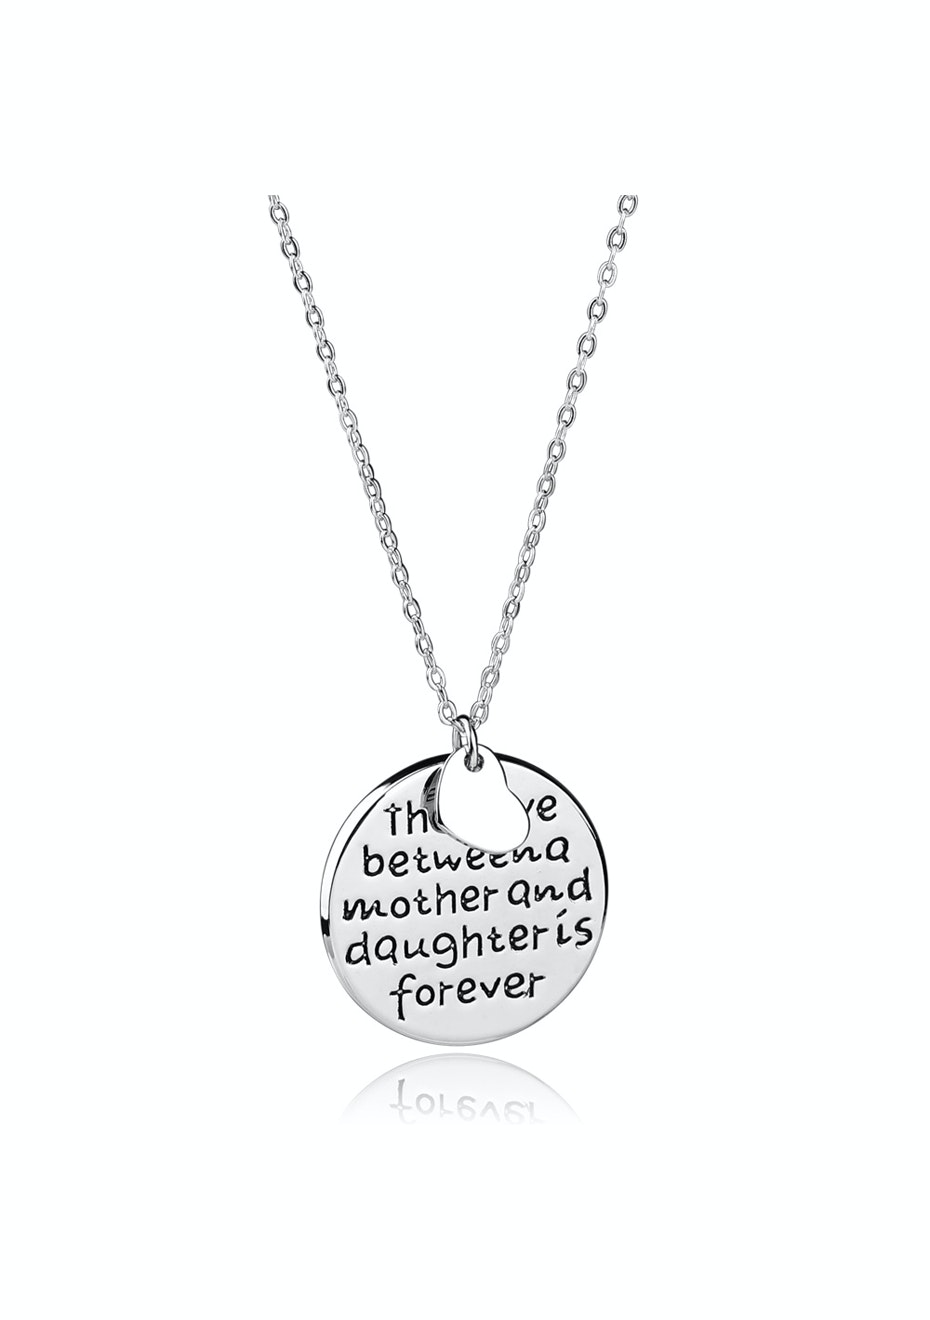 Mother and daughter love pendant Necklace